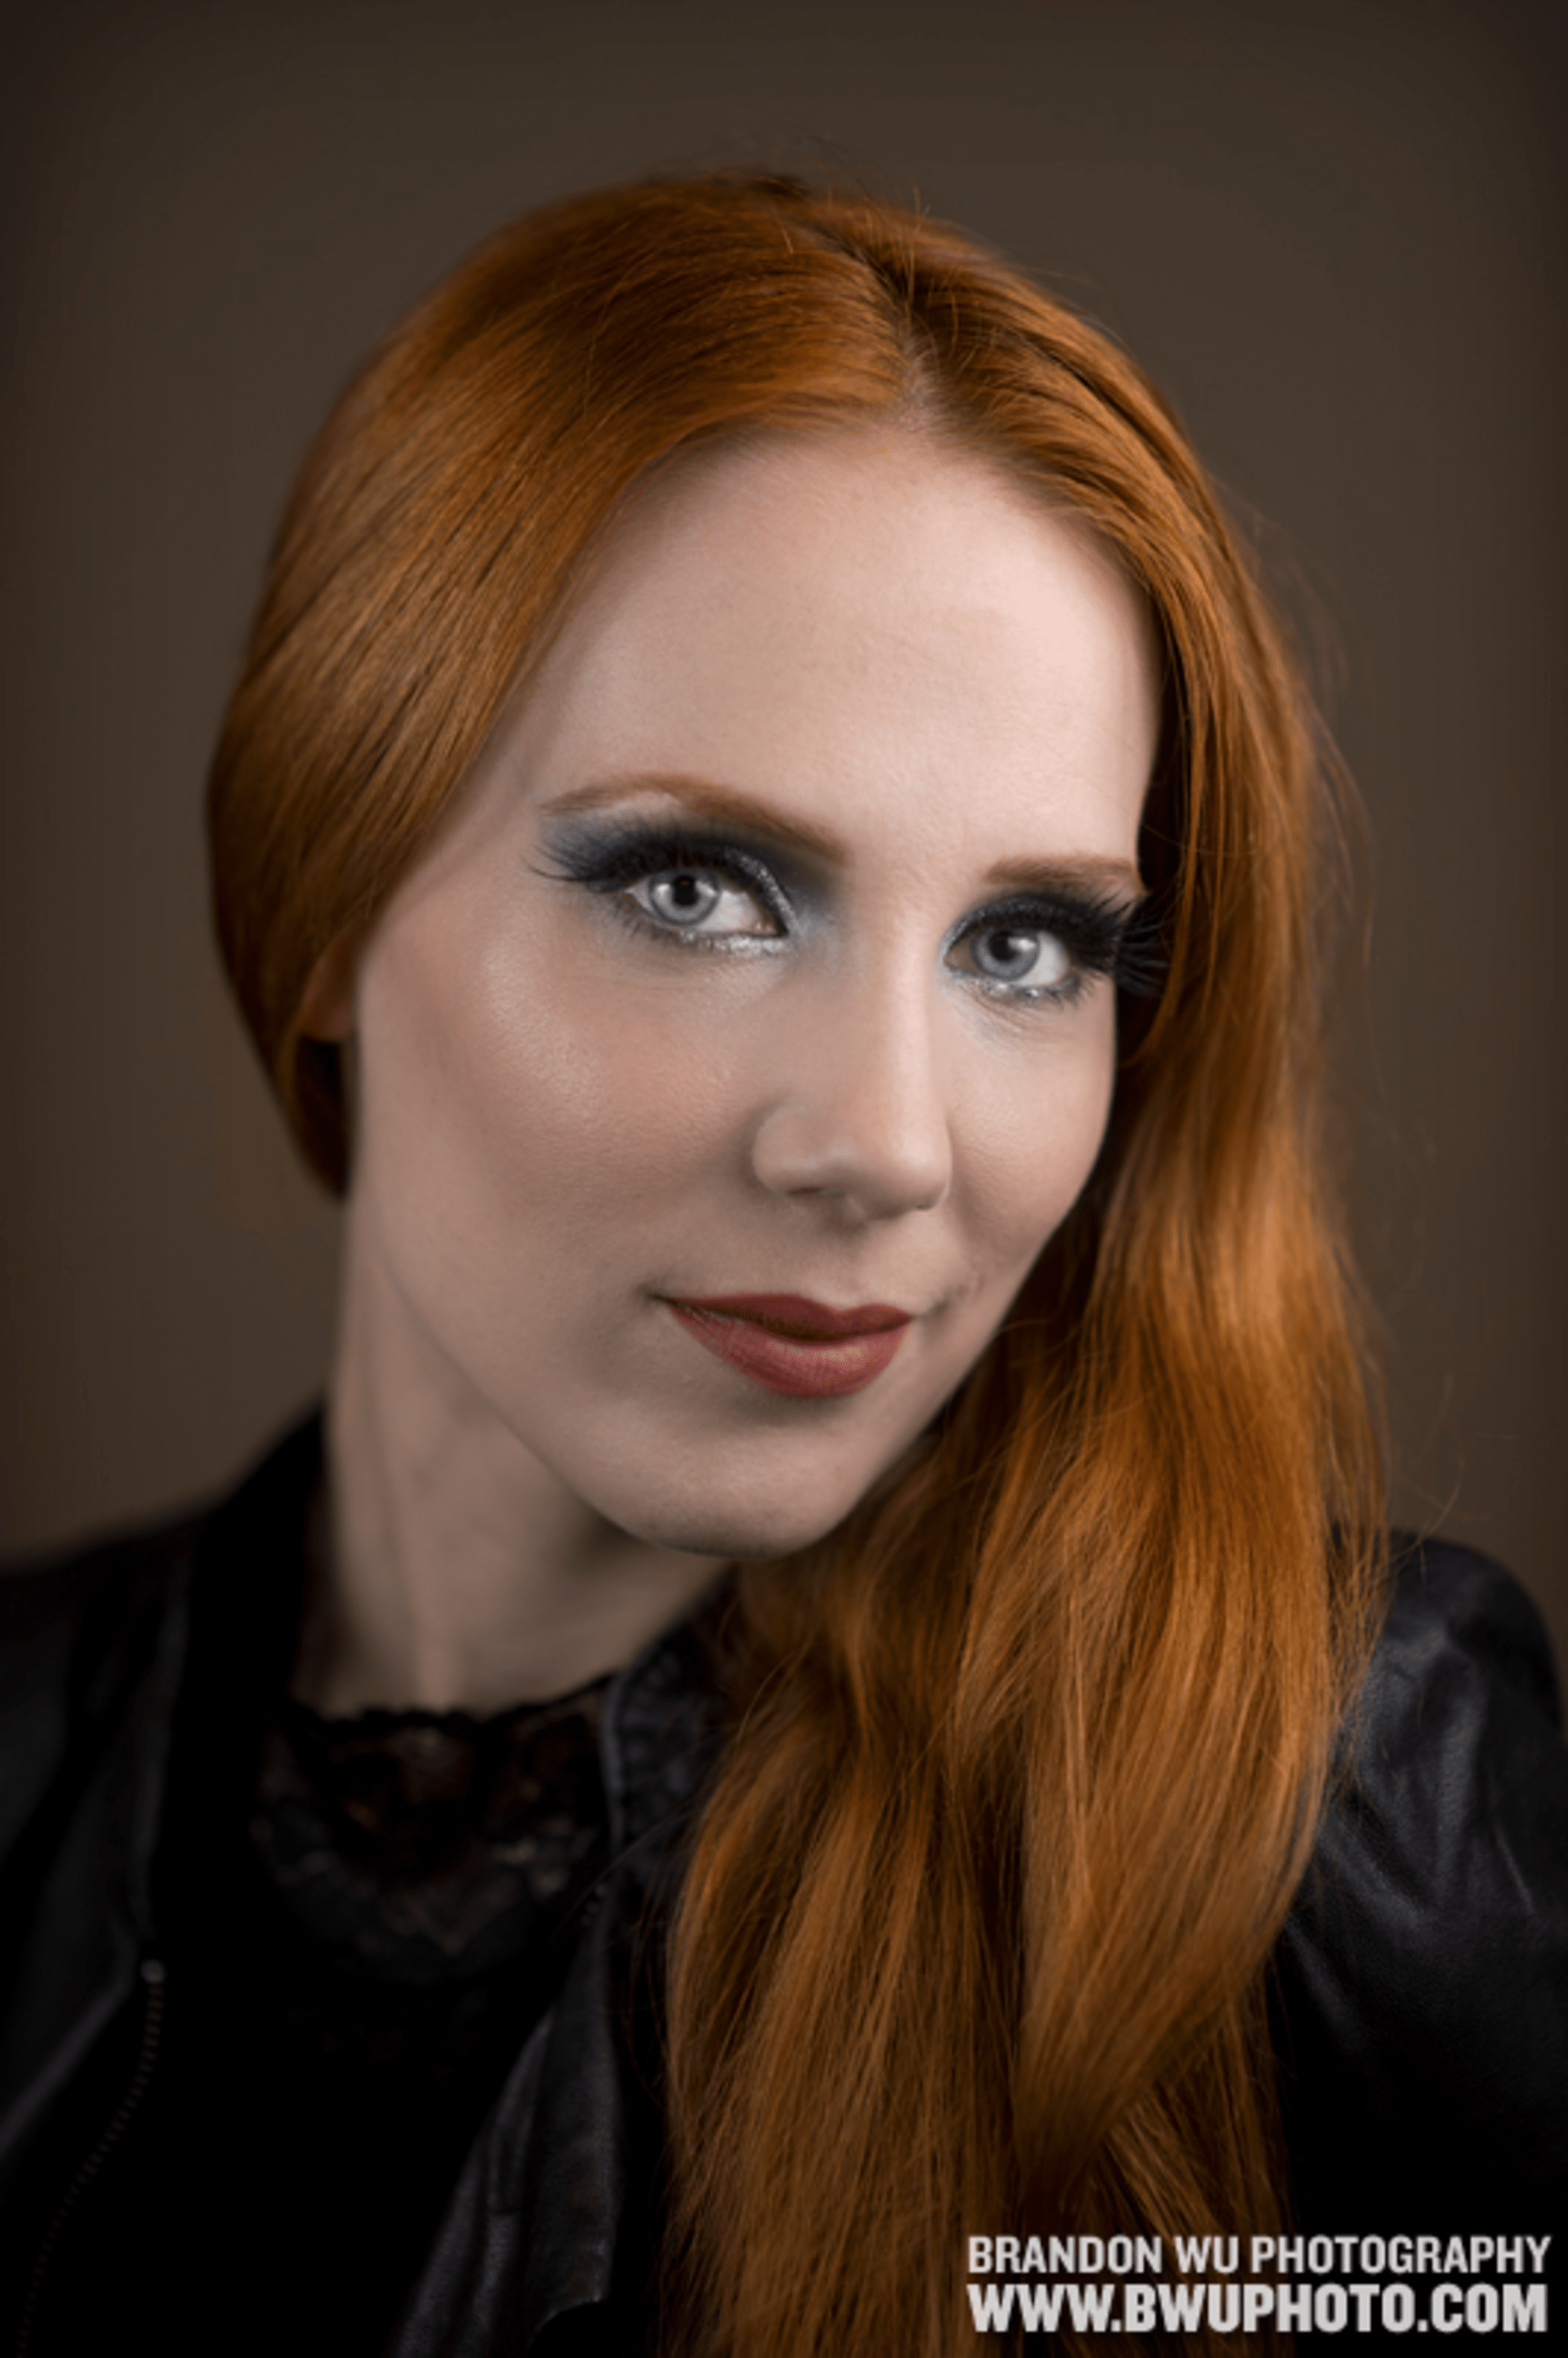 Simone Simons of Epica poses for a portrait before Epicas tour-opening performance at the Howard Theatre. October 23, 2012.s tour-opening performance at the Howard Theatre. October 23, 2012.